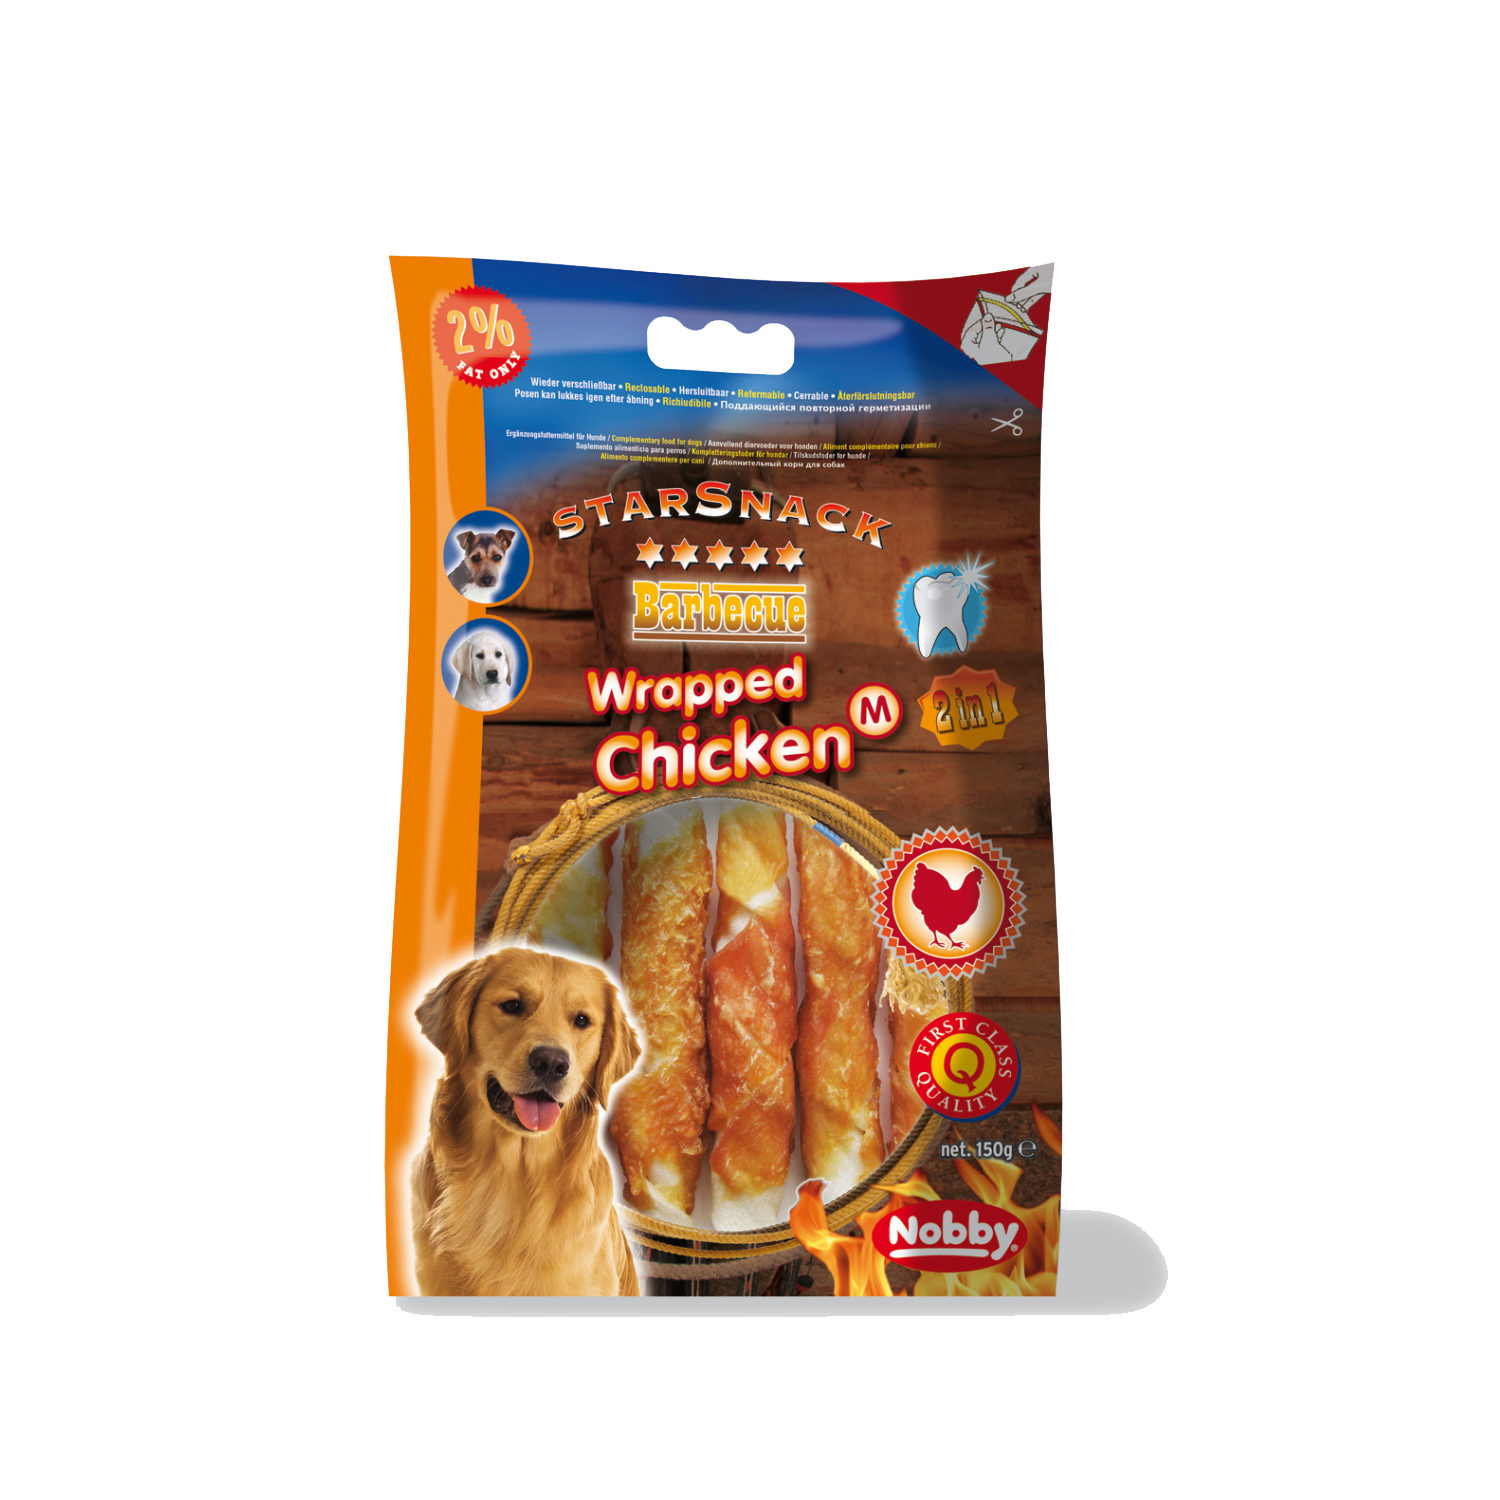 Nobby Starsnack - Chicken Wrapped